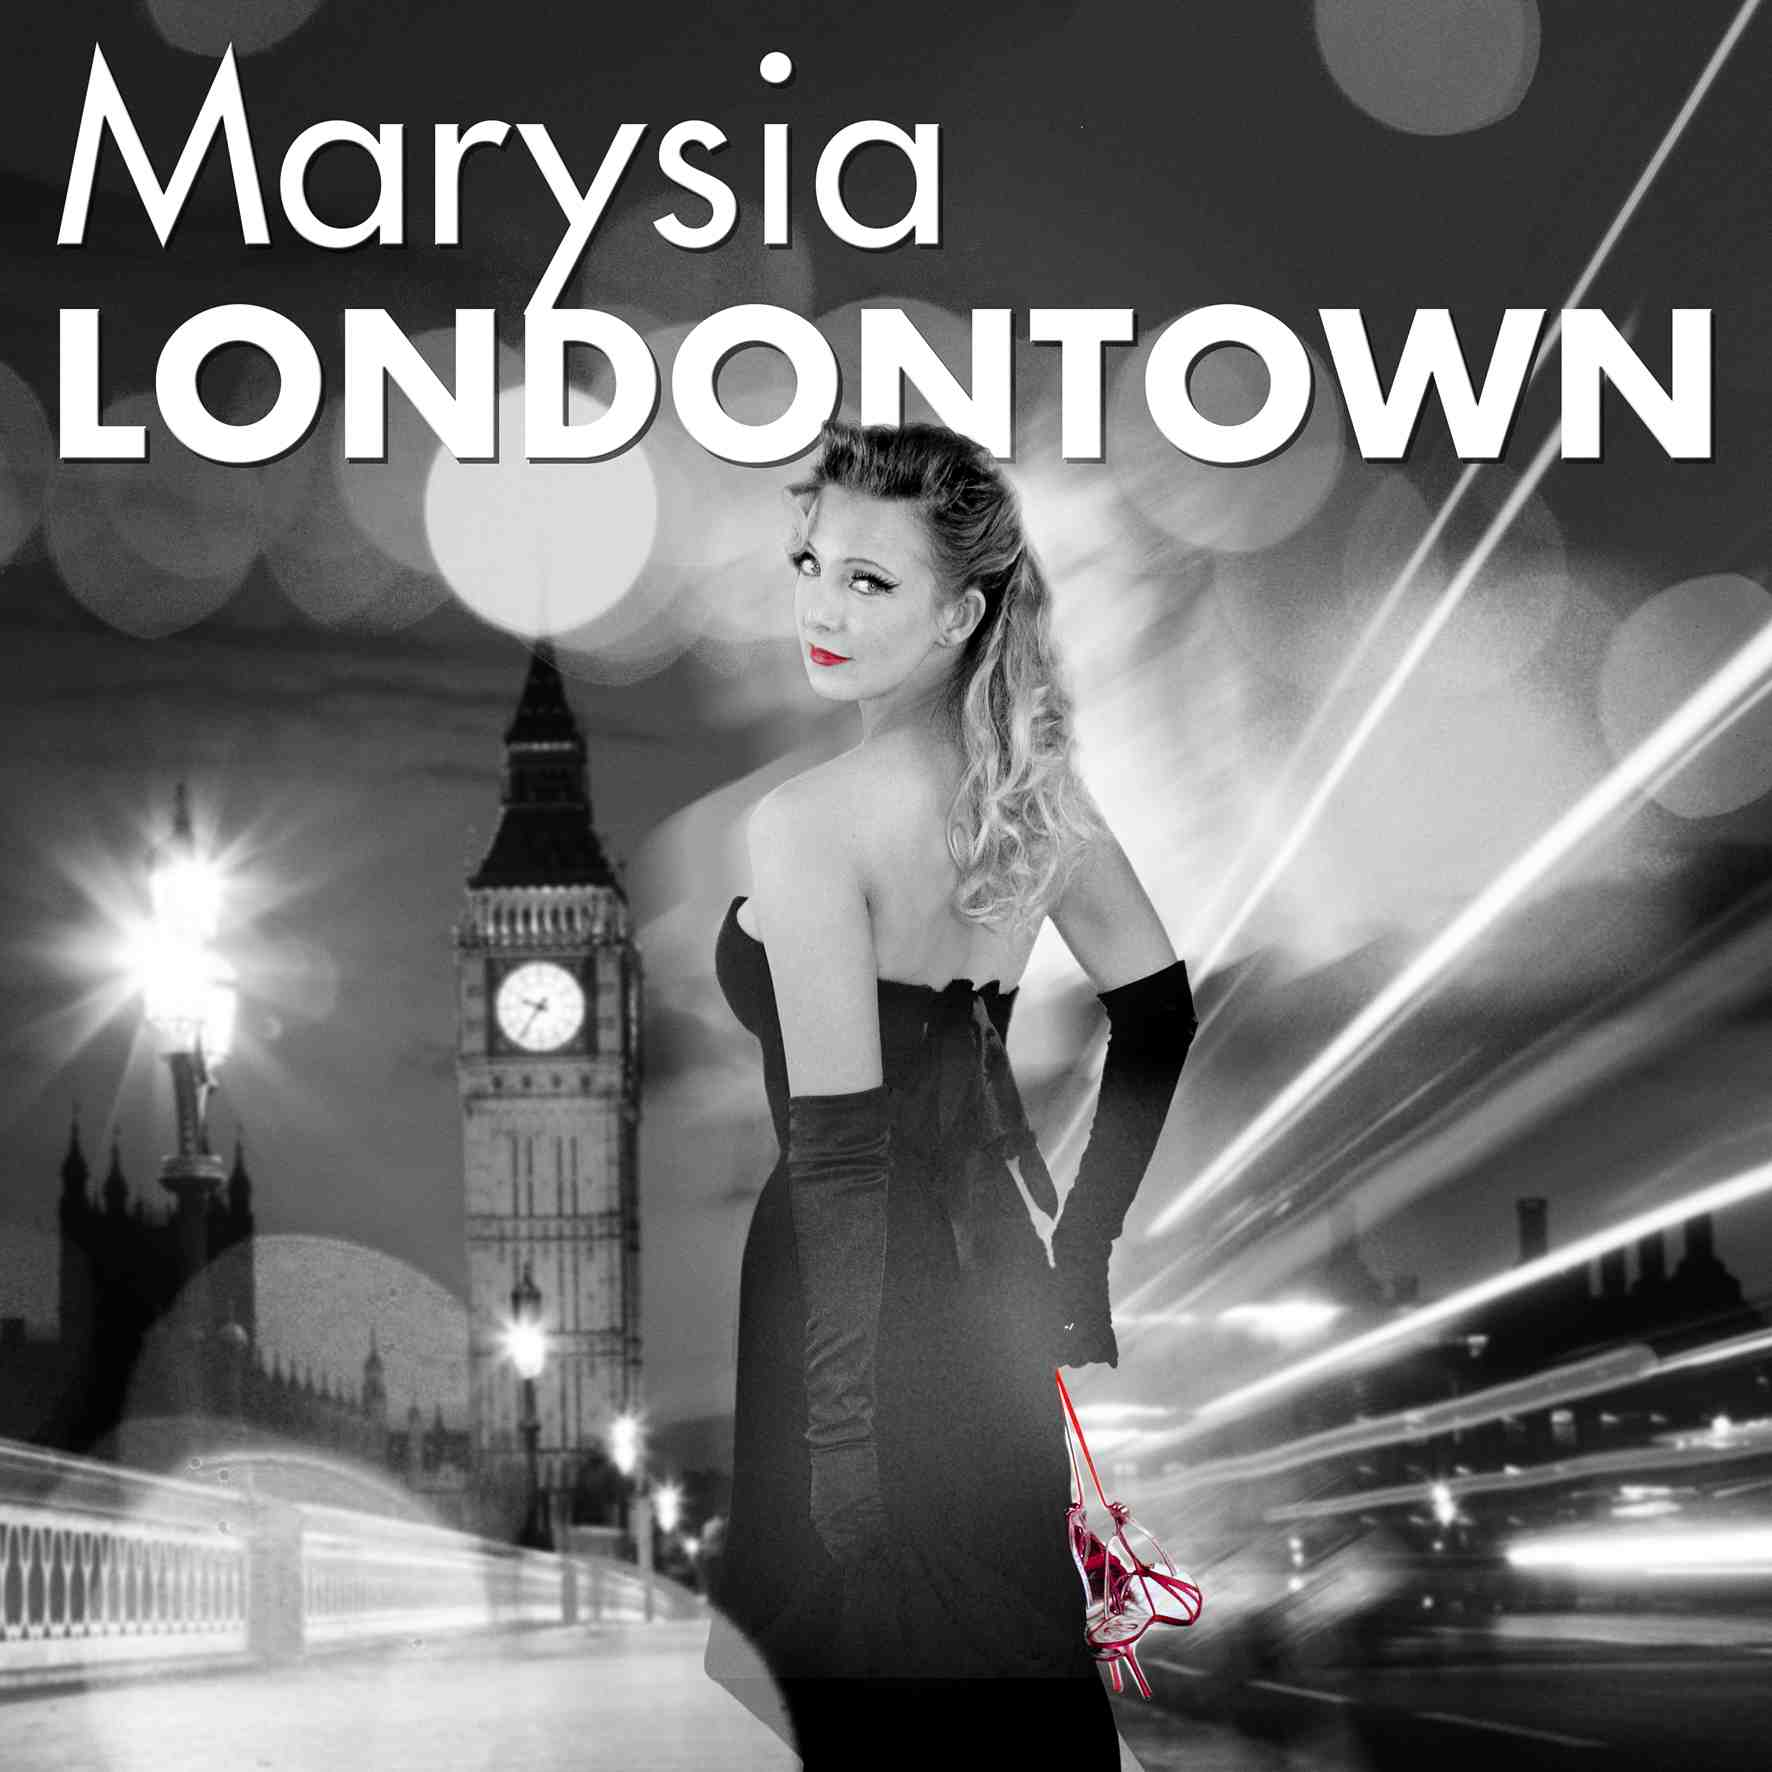 The official 'Londontown' image ;-)